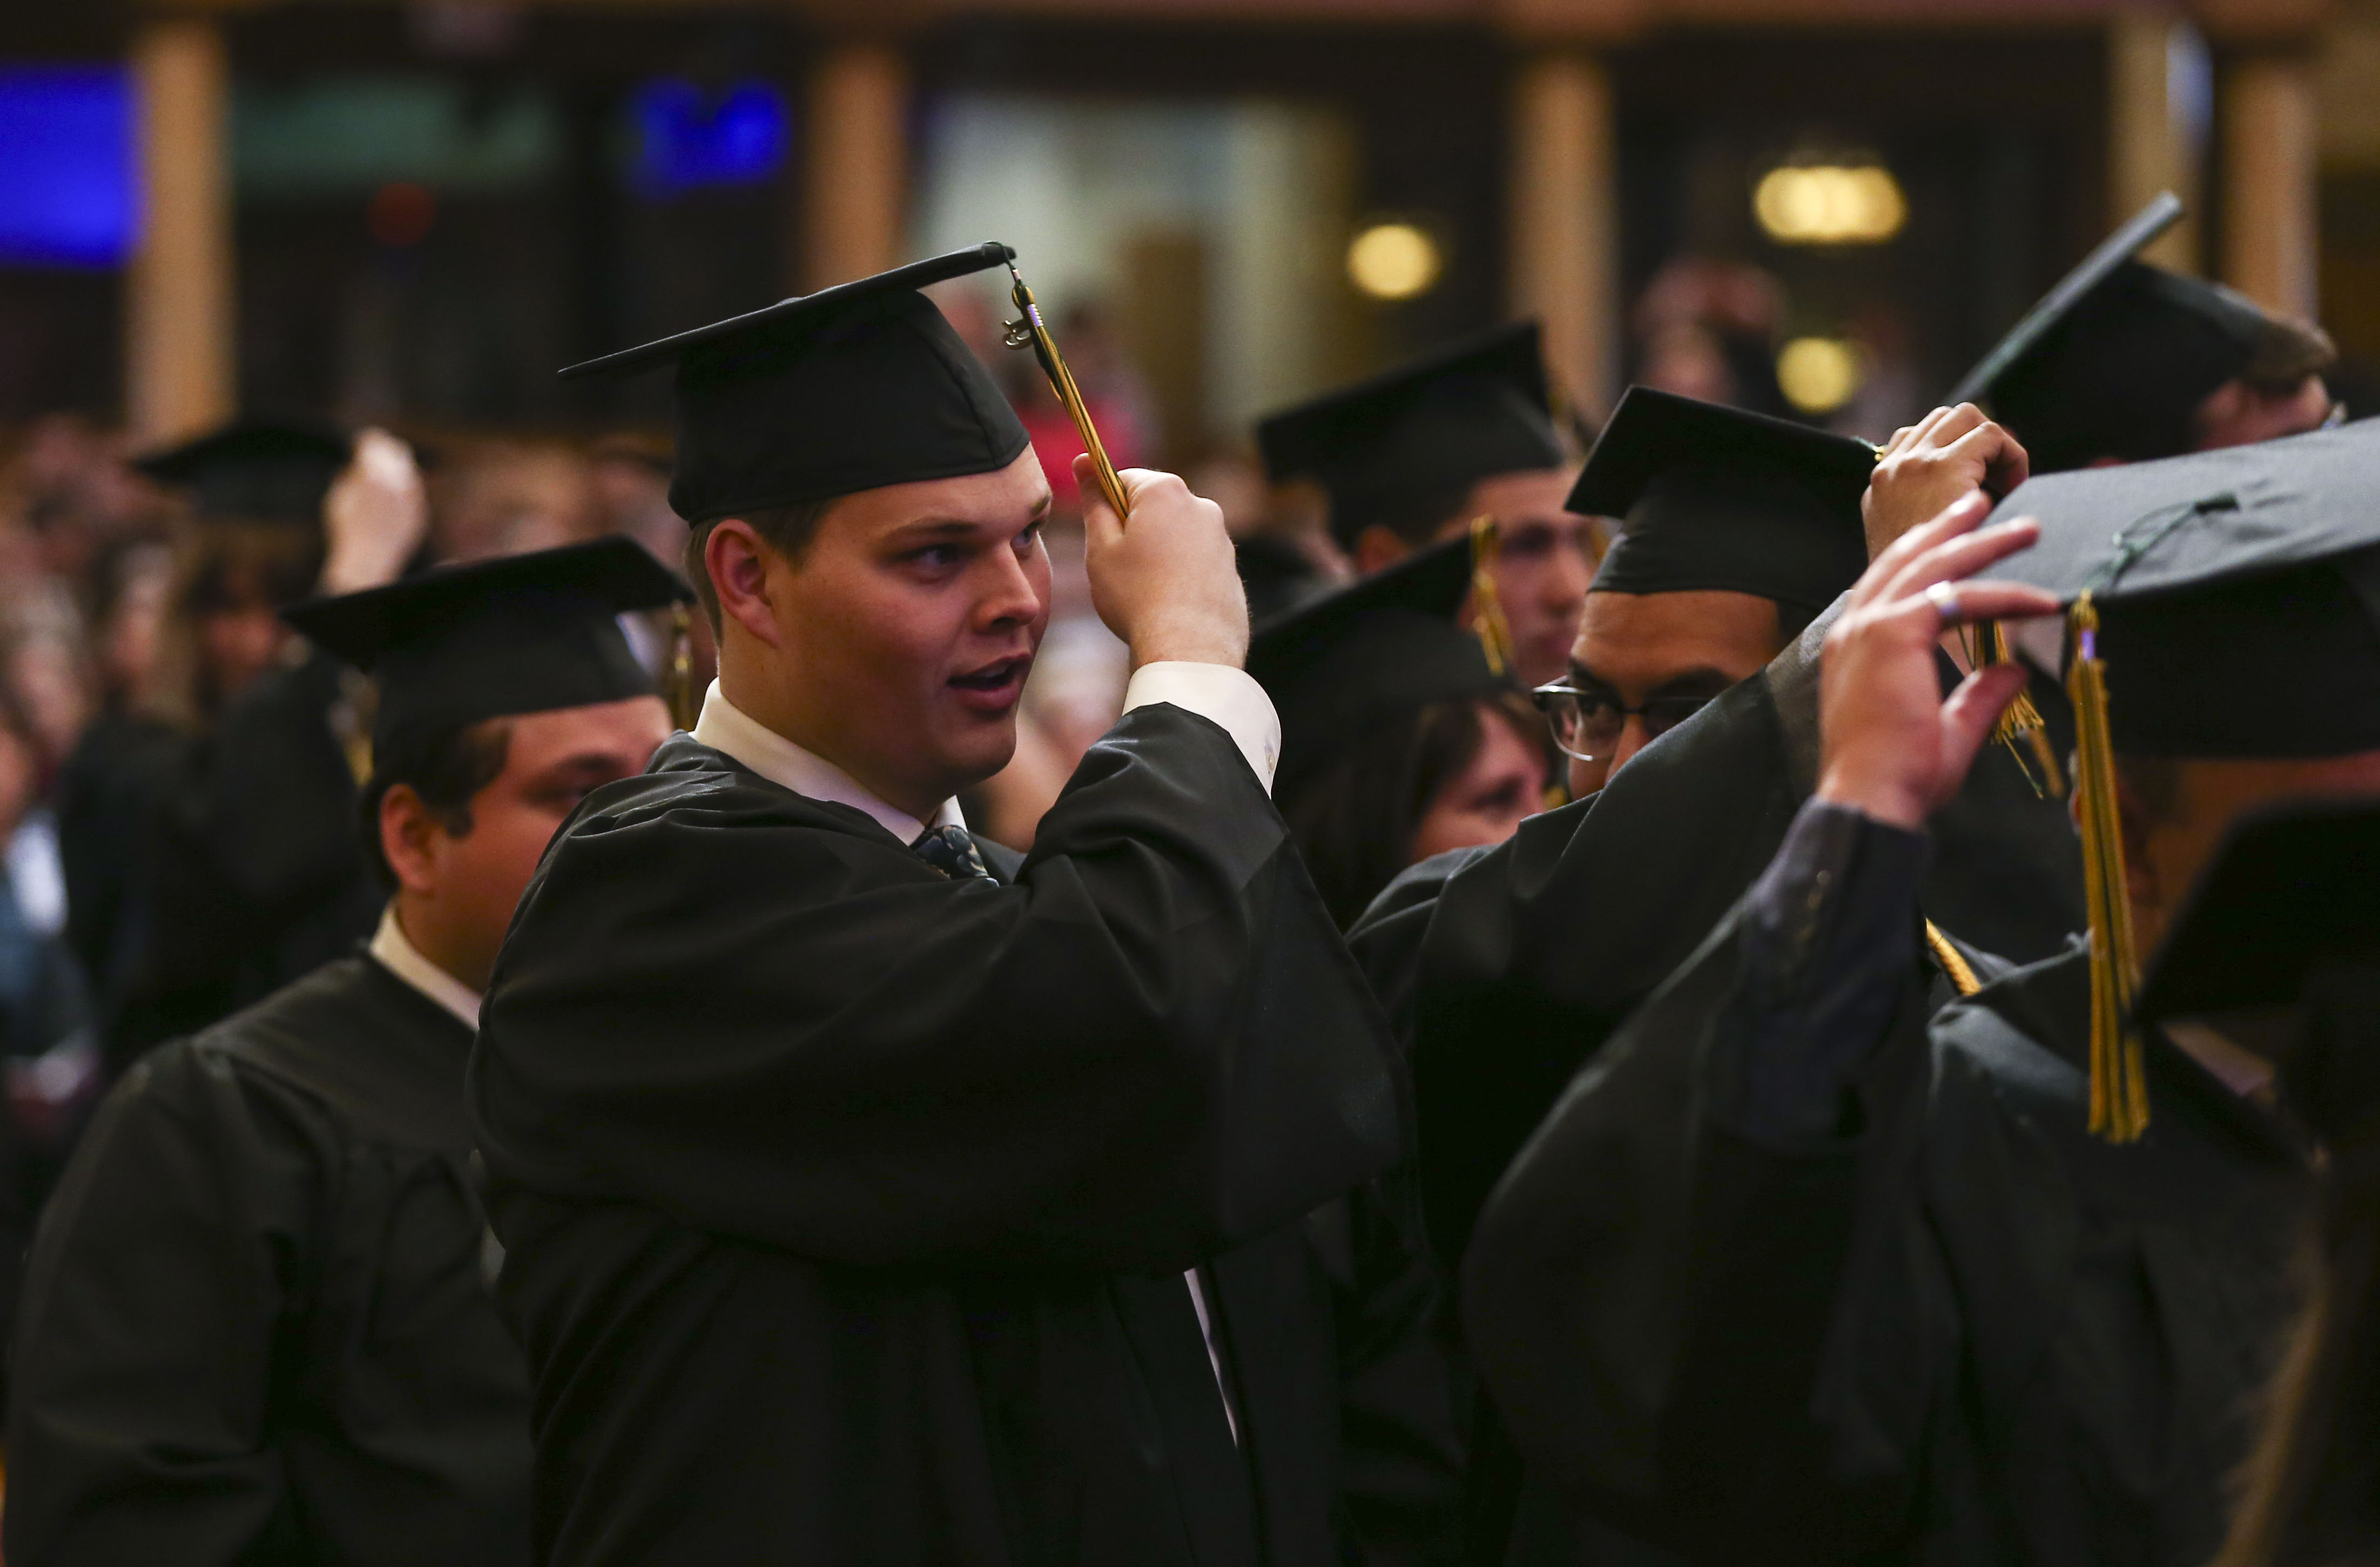 Joseph Justice moves his tassel from the right side to the left during the commencement ceremony for LDS Business College at the Tabernacle on Temple Square in Salt Lake City on Friday, April 12, 2019.